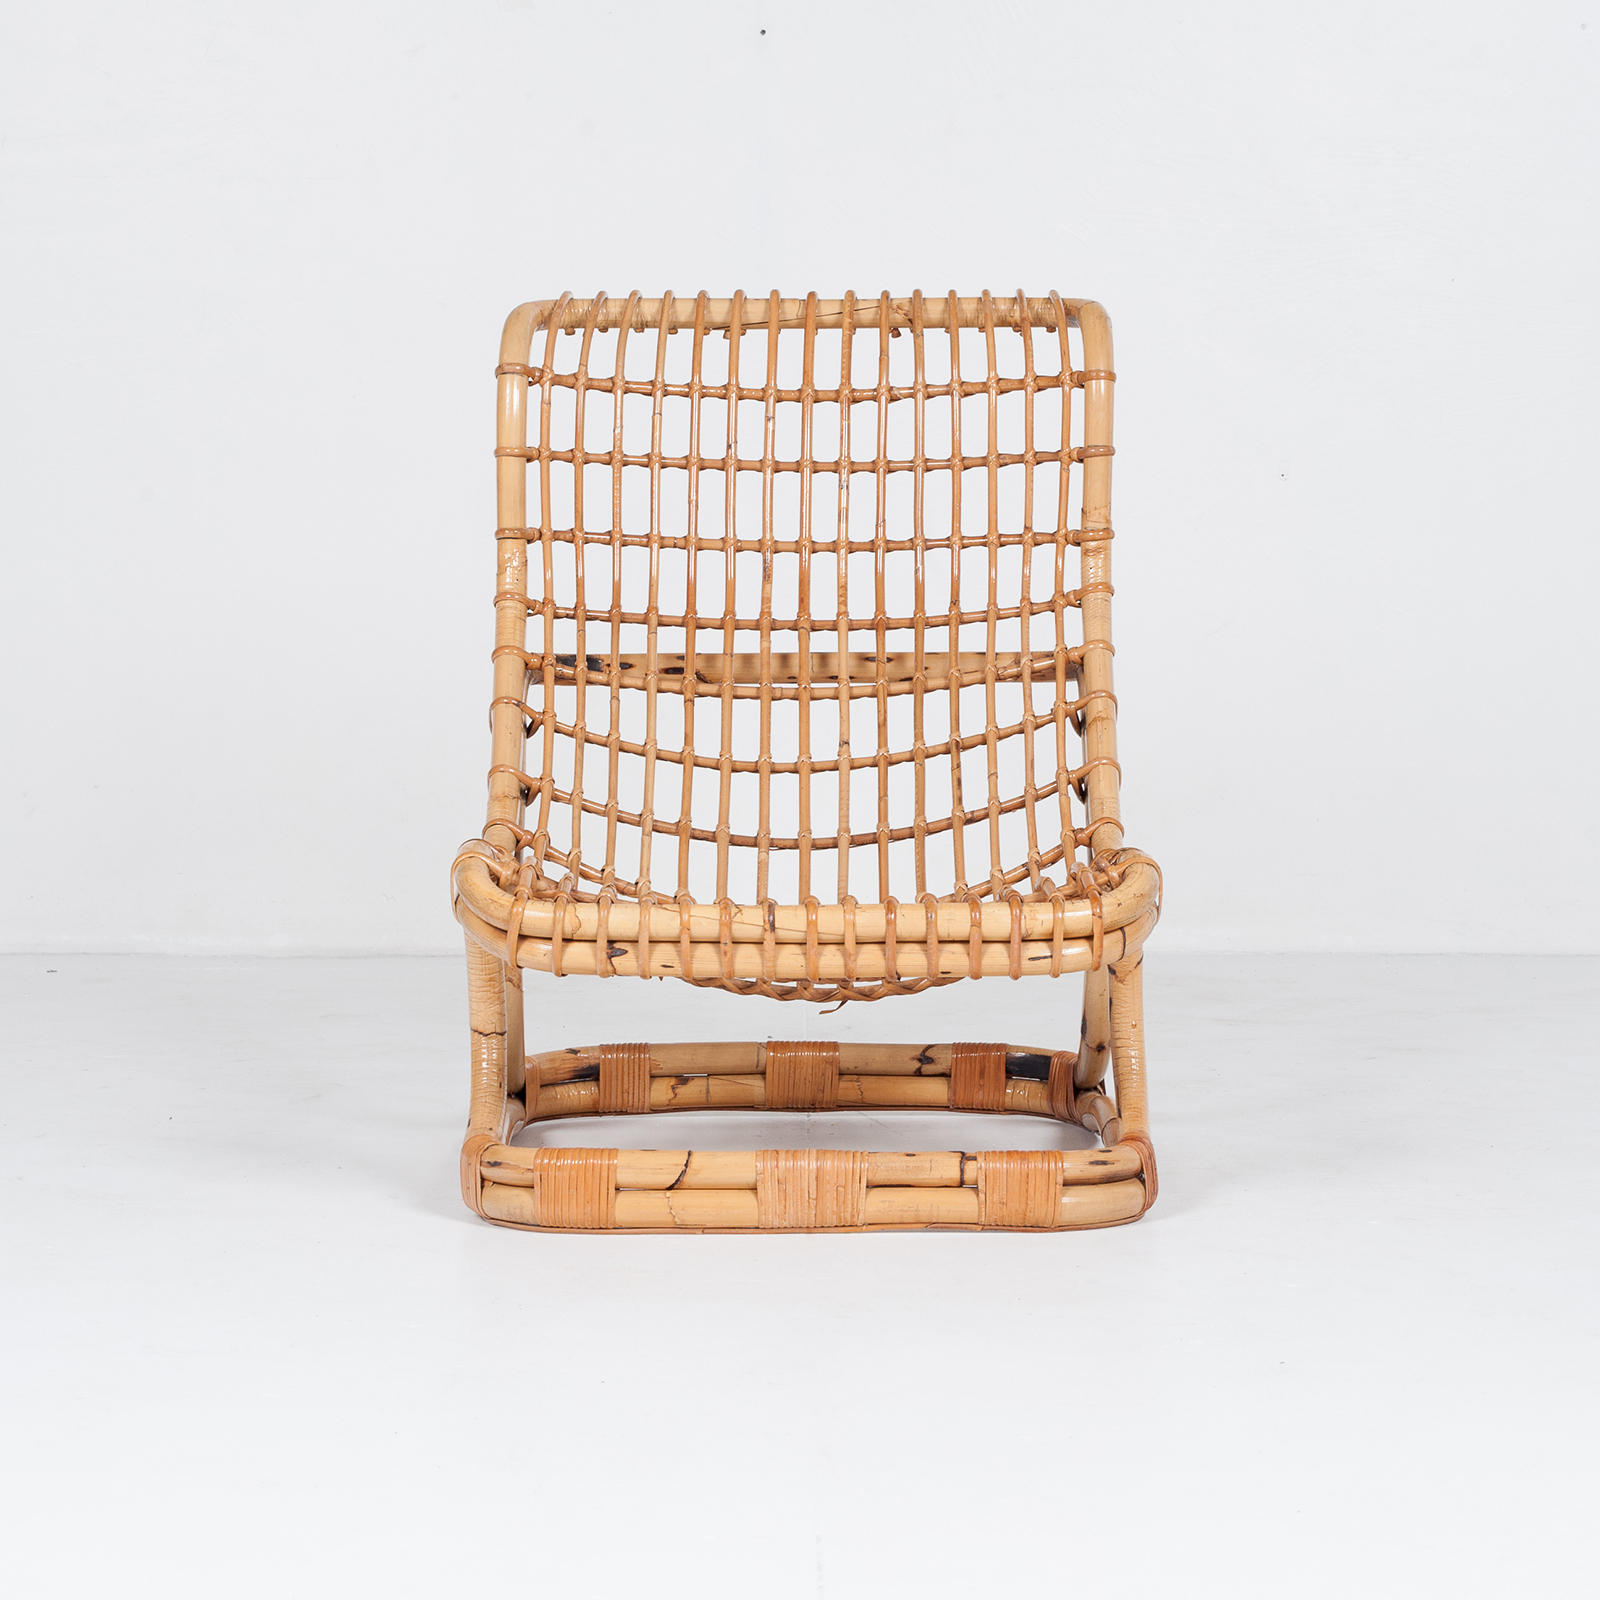 Lounge Chair By Tito Agnoli In Cane, 1960s, Italy49